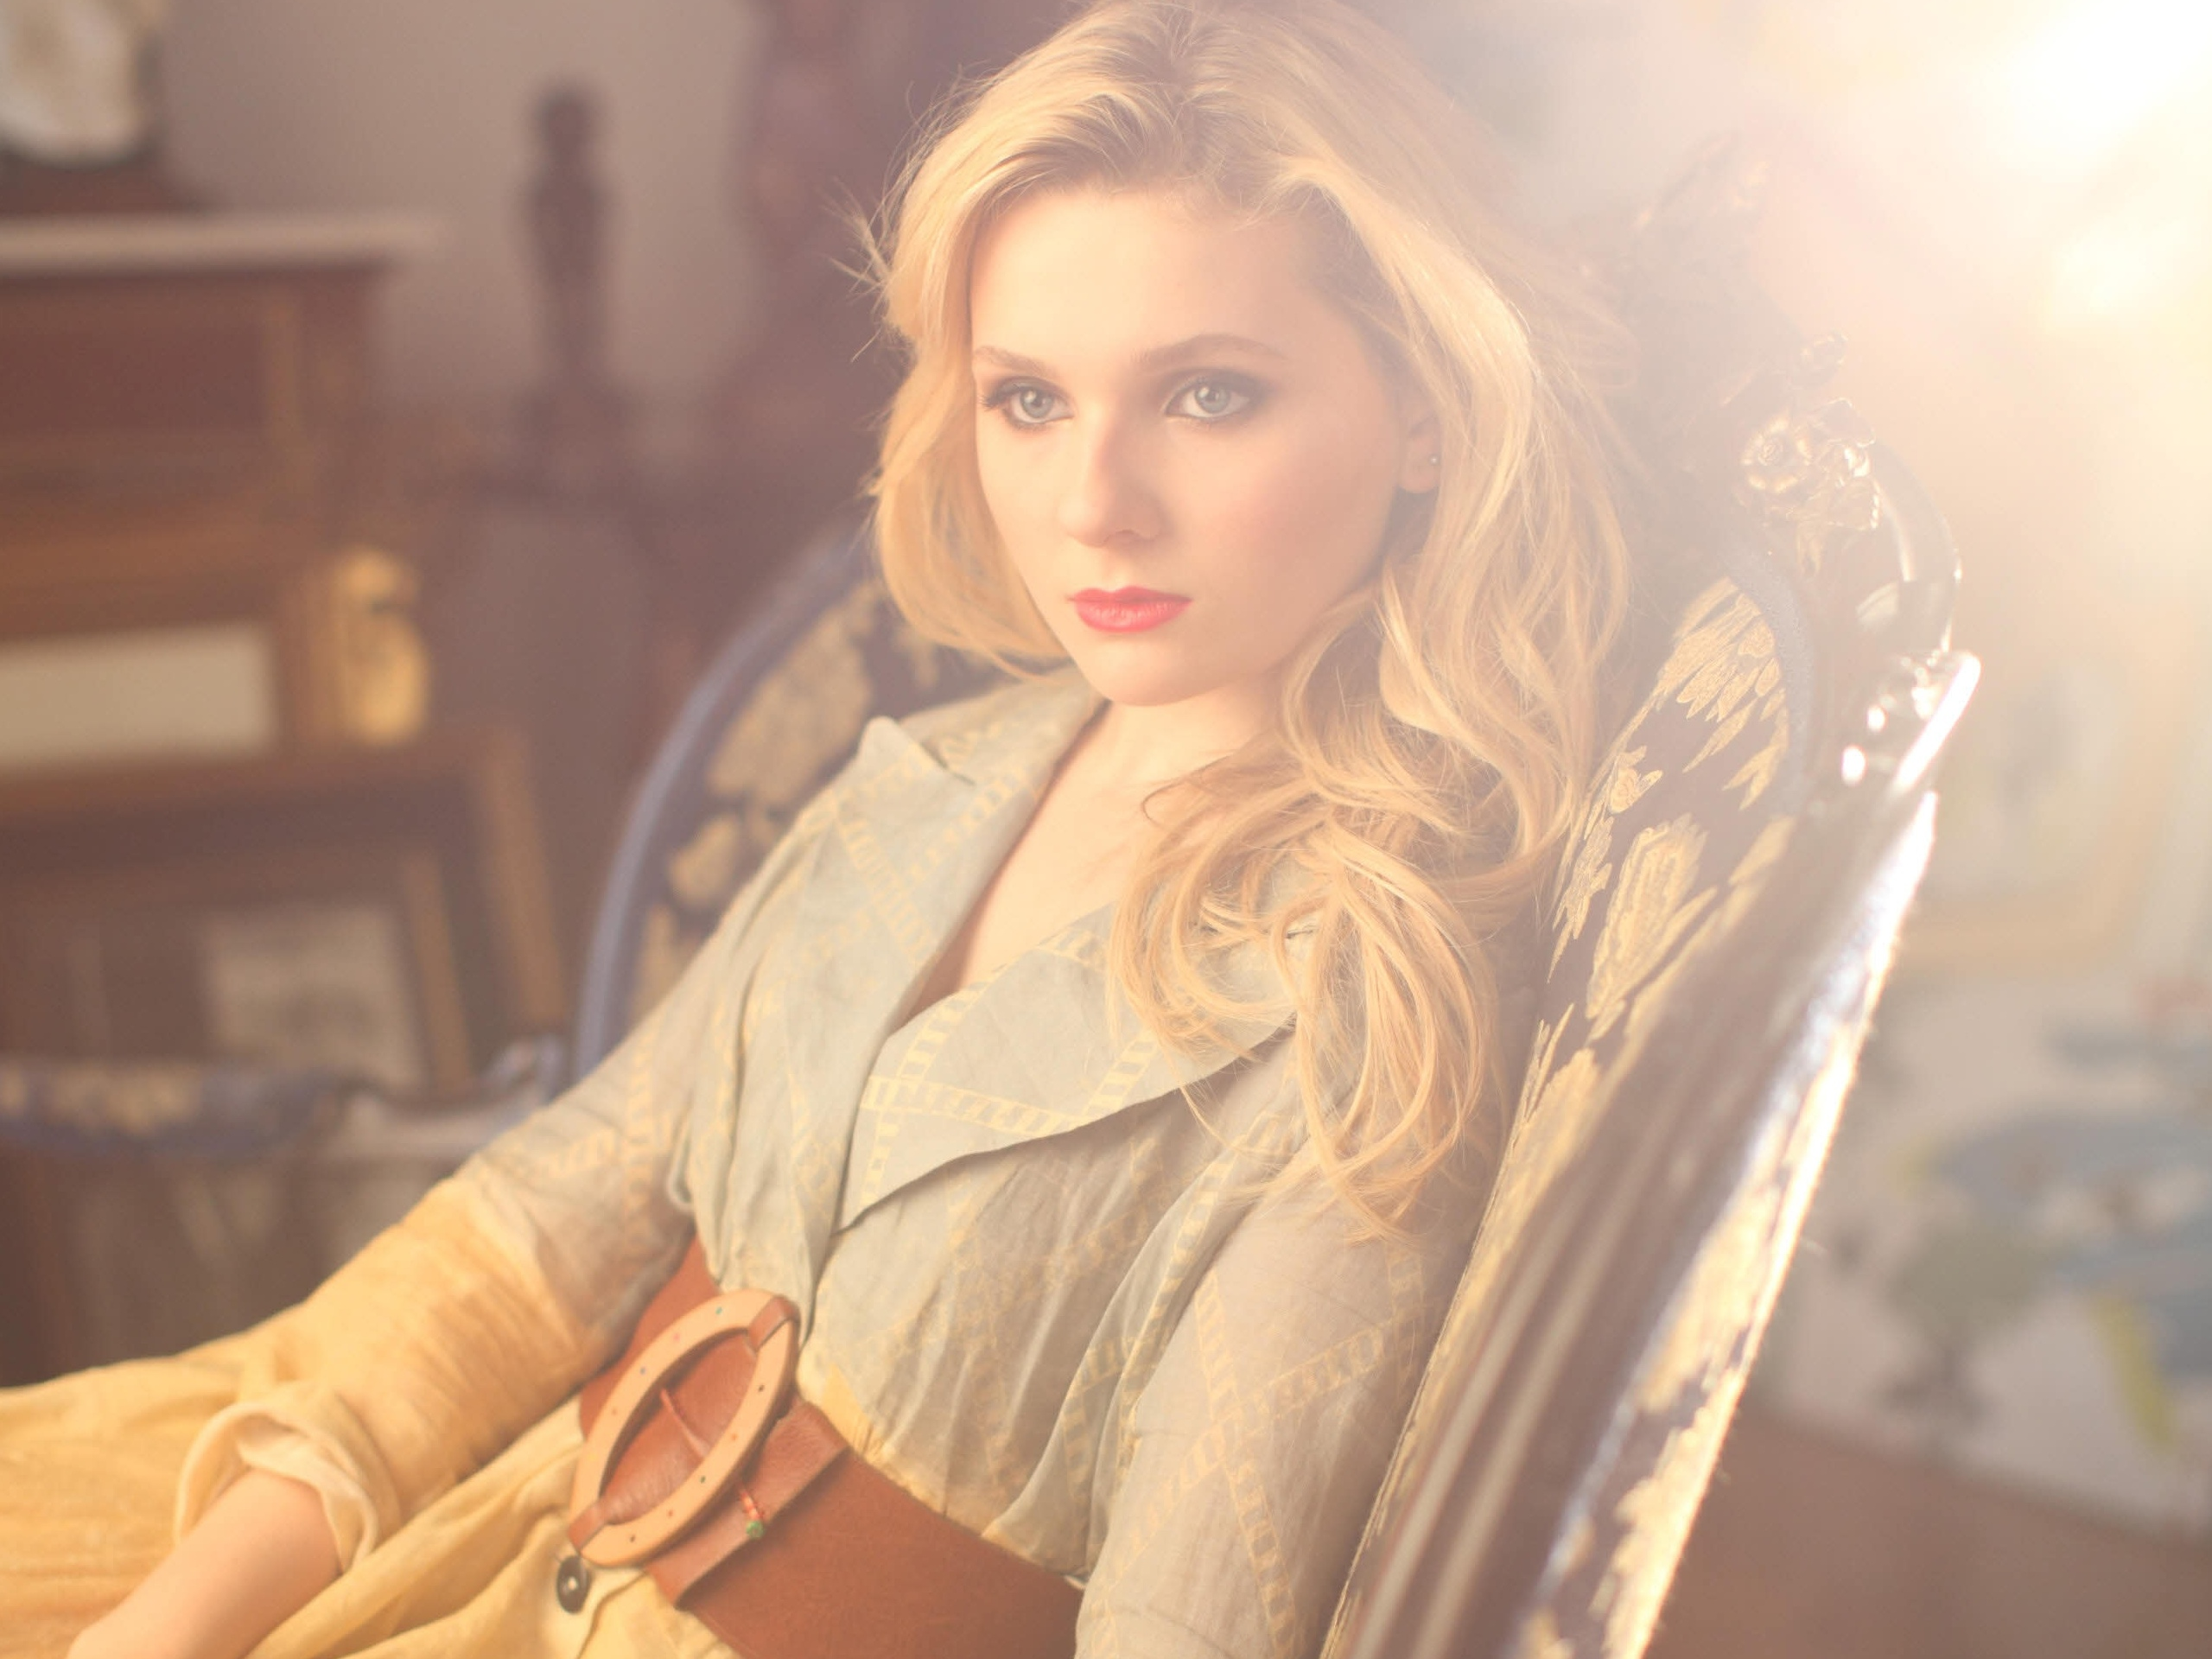 Abigail Breslin romantic picture - Abigail Breslin Movies, Age, Weight, Net Worth, Family and Wallpapers